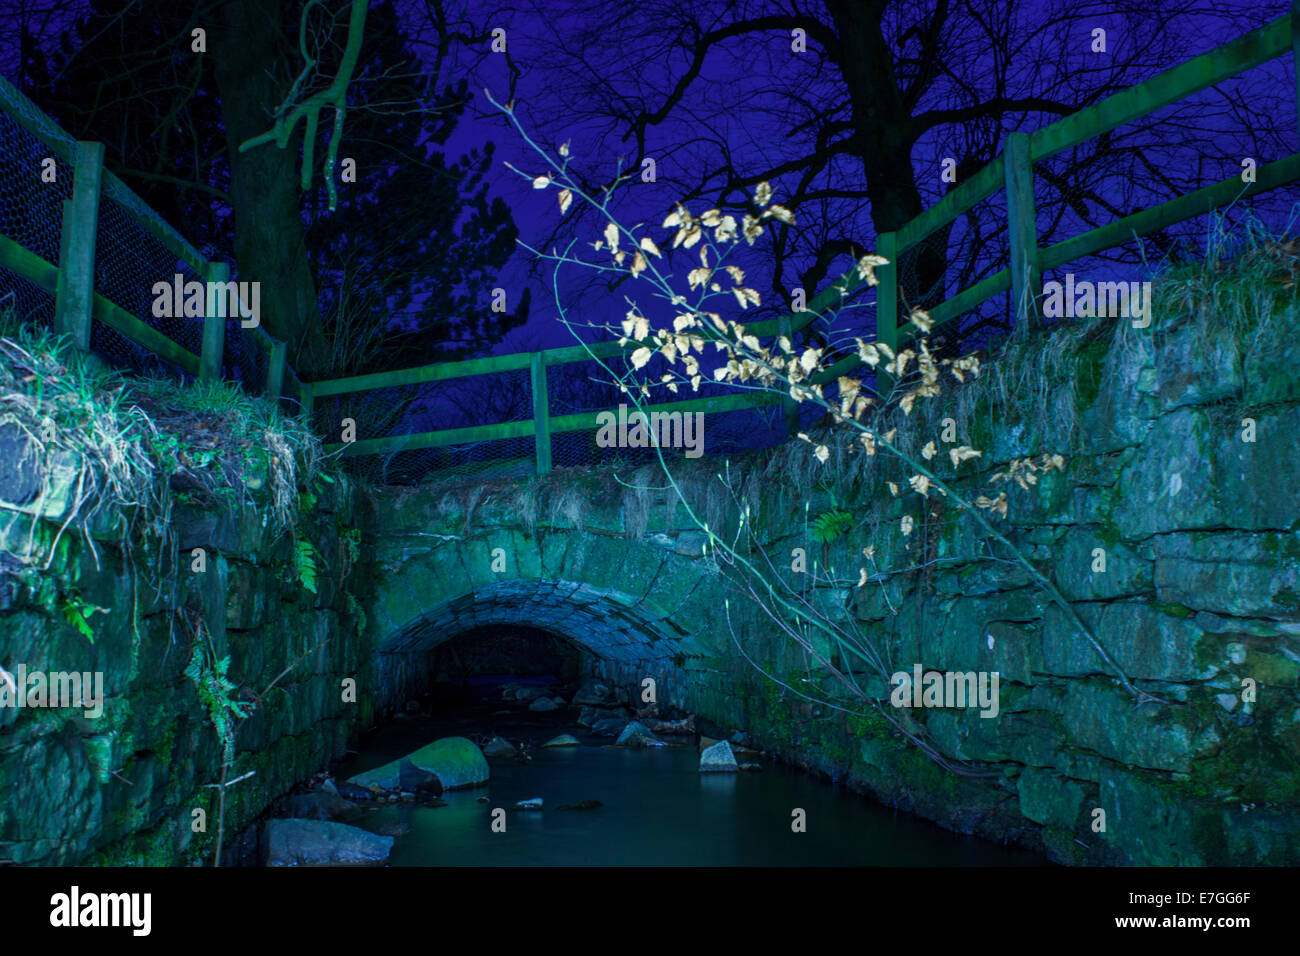 Landscape at night, filled with flashgun's to show context - Stock Image